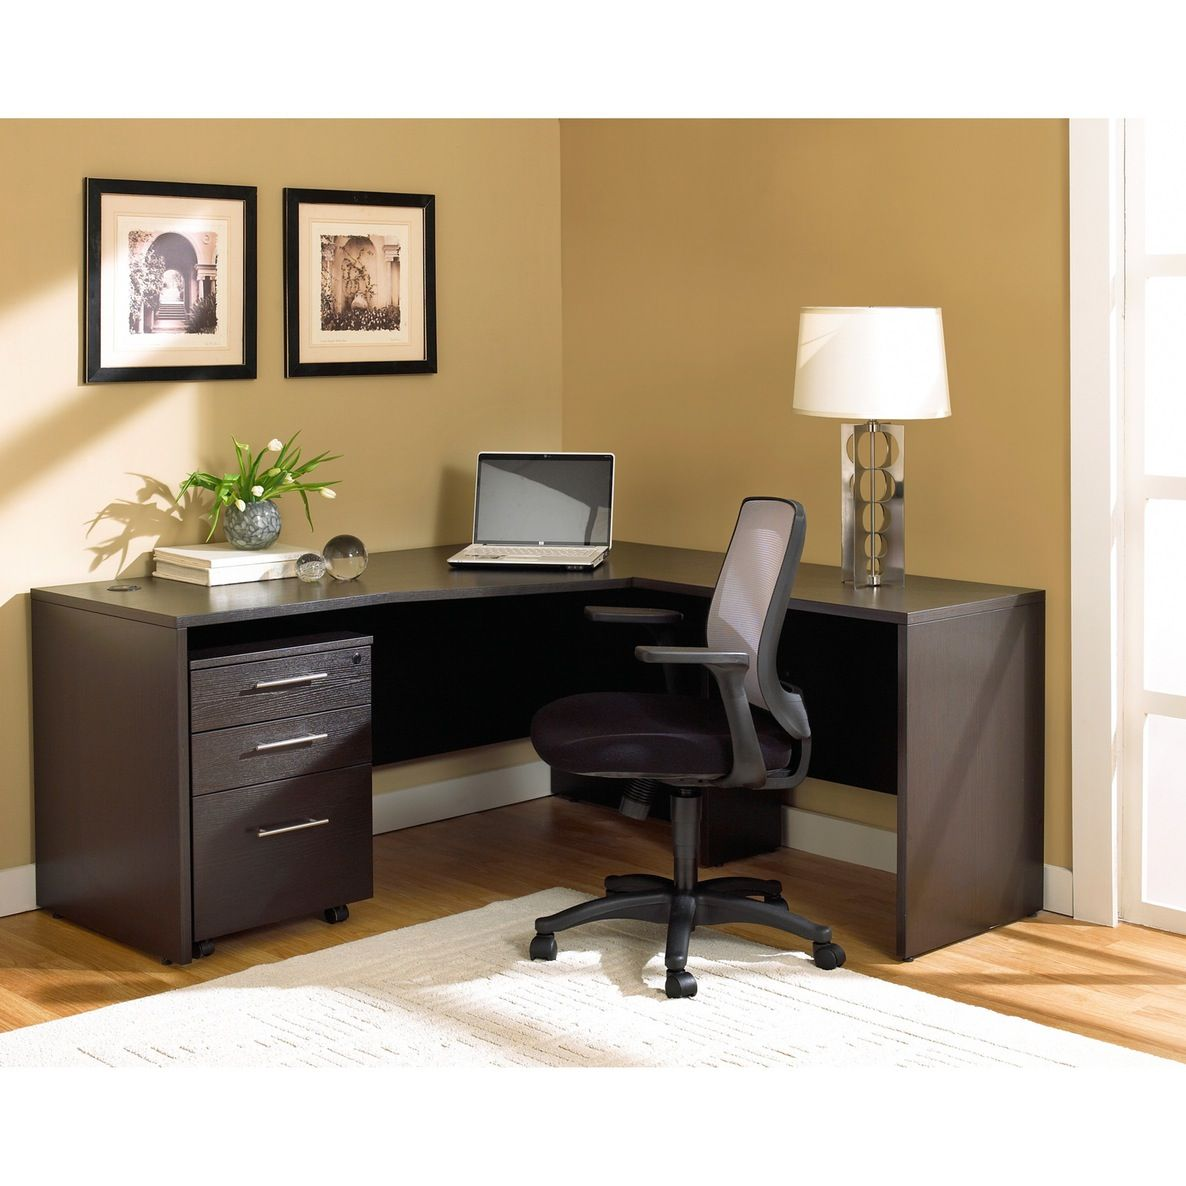 Modern furniture l shape office desks for small spaces with l shaped